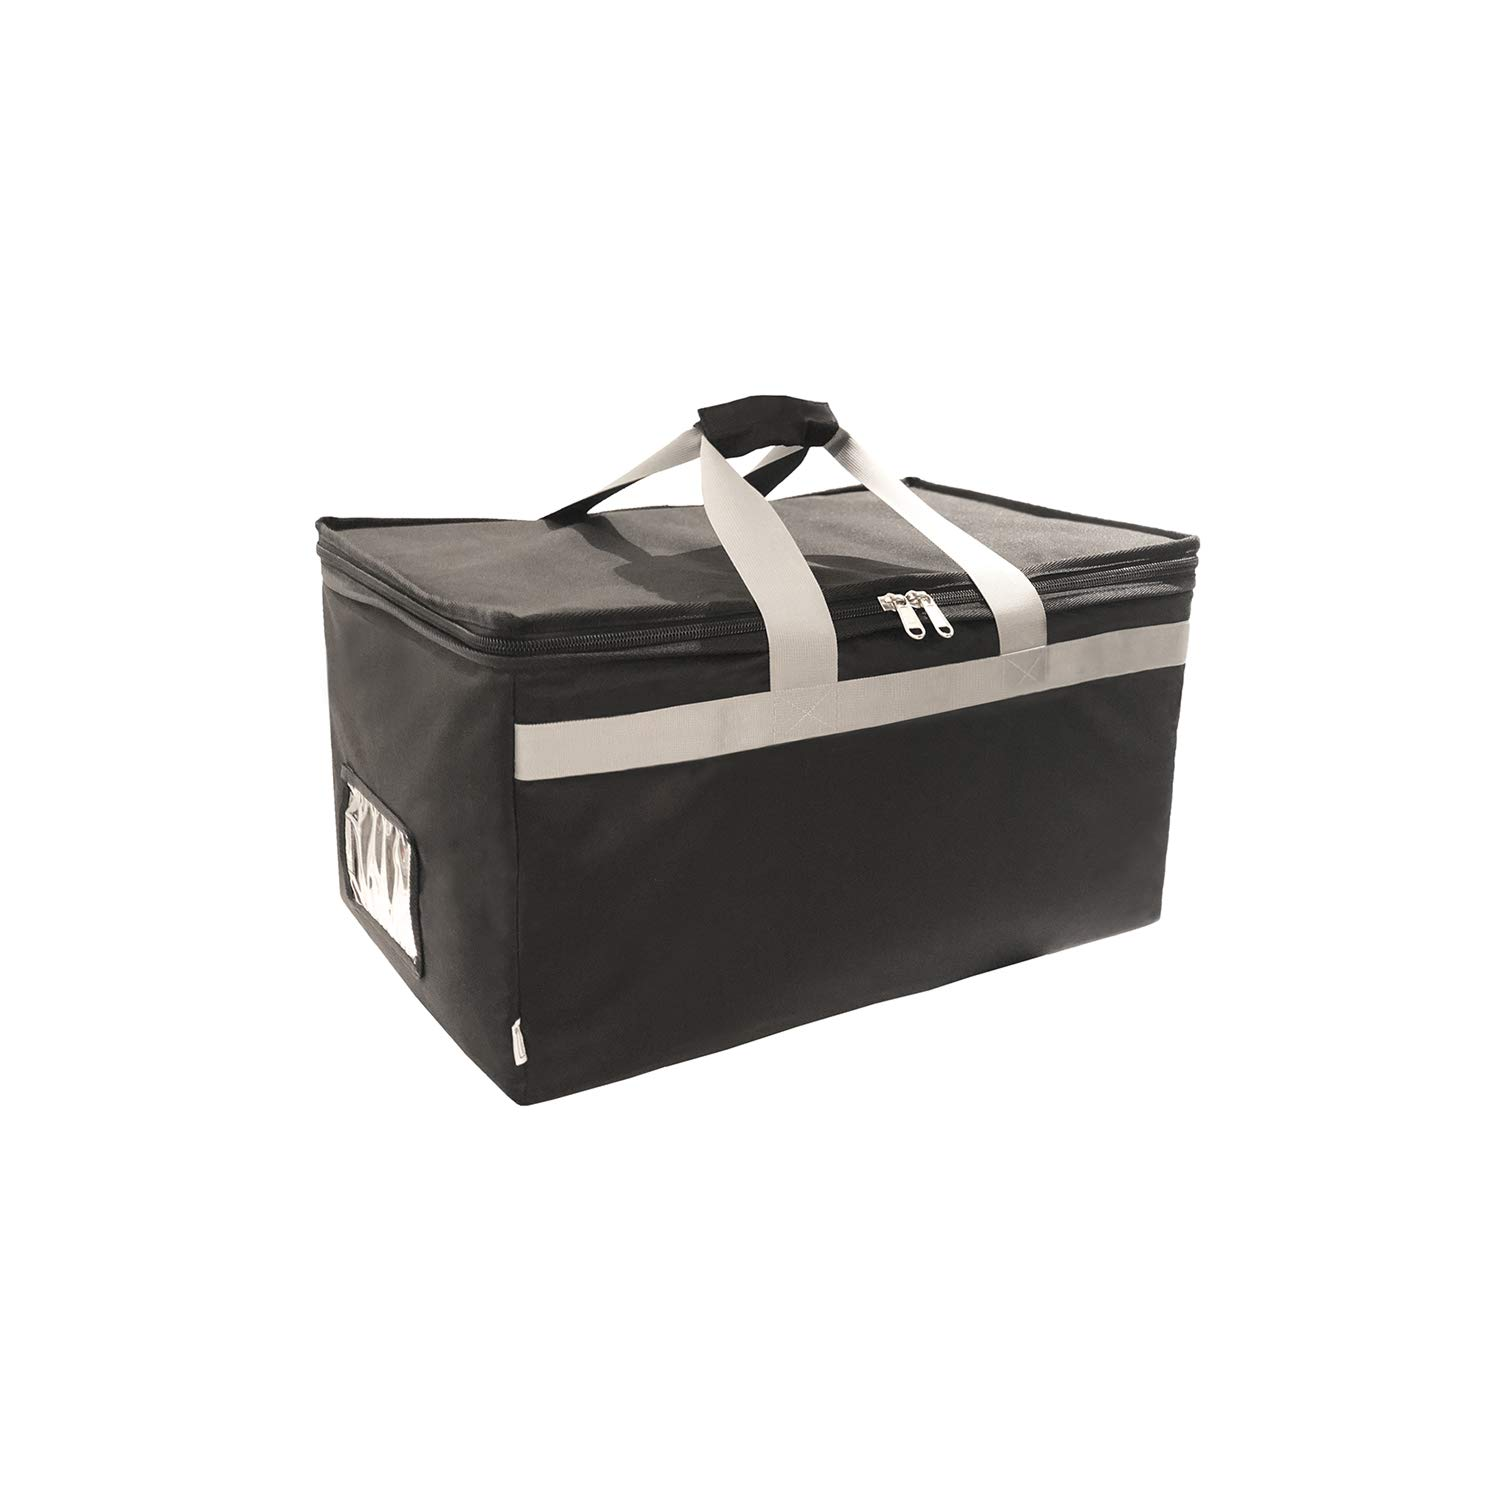 "Insulated Food Delivery Bag Carrier, 18""x12""x10"", Waterproof and Leakproof Interior, Uber Eats Doordash Restaurant Catering"